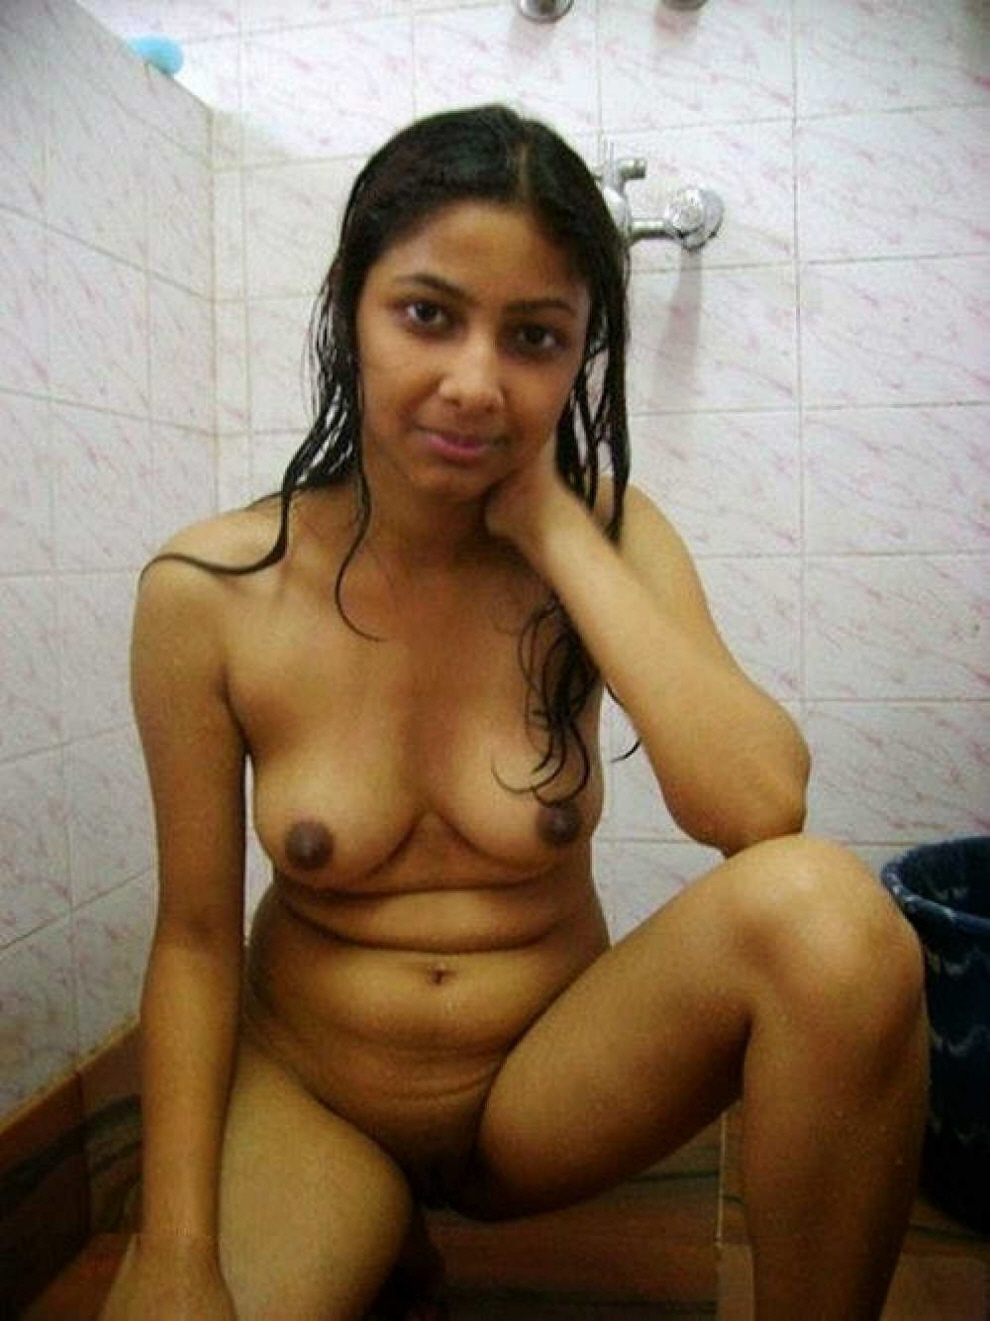 Indian colleg sxcy gharil xxxfoto consider, that